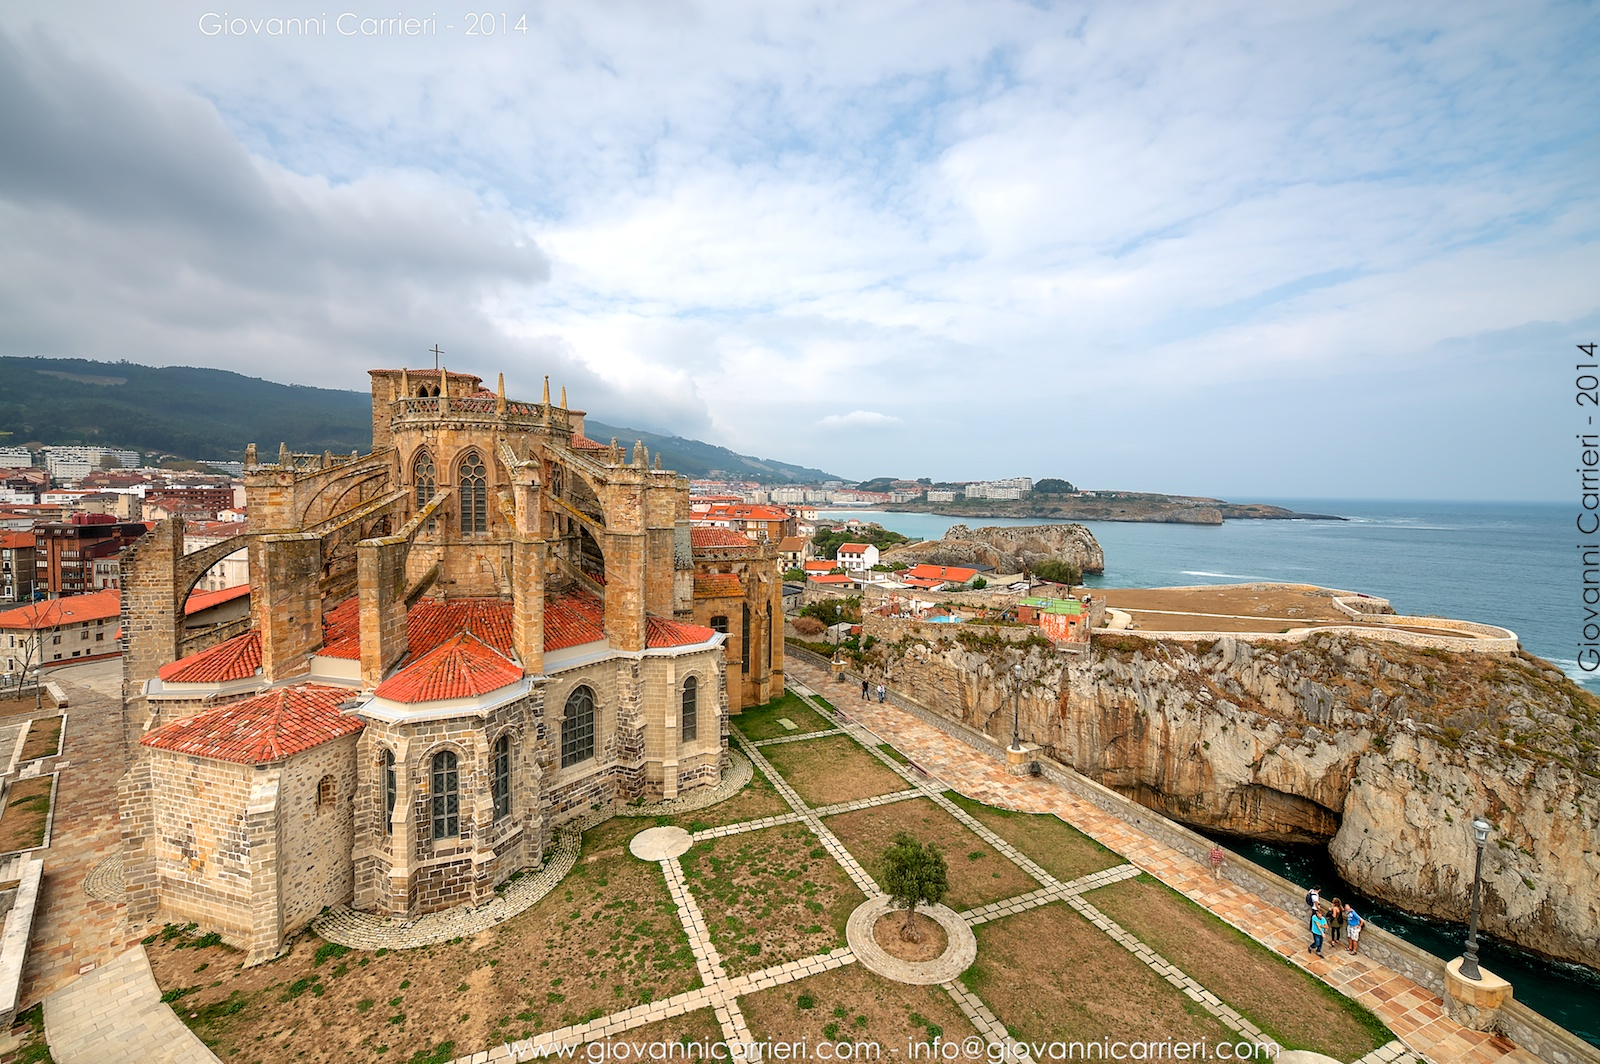 Panoramic view of the church of Santa Maria Assunta and the Bay of Biscay